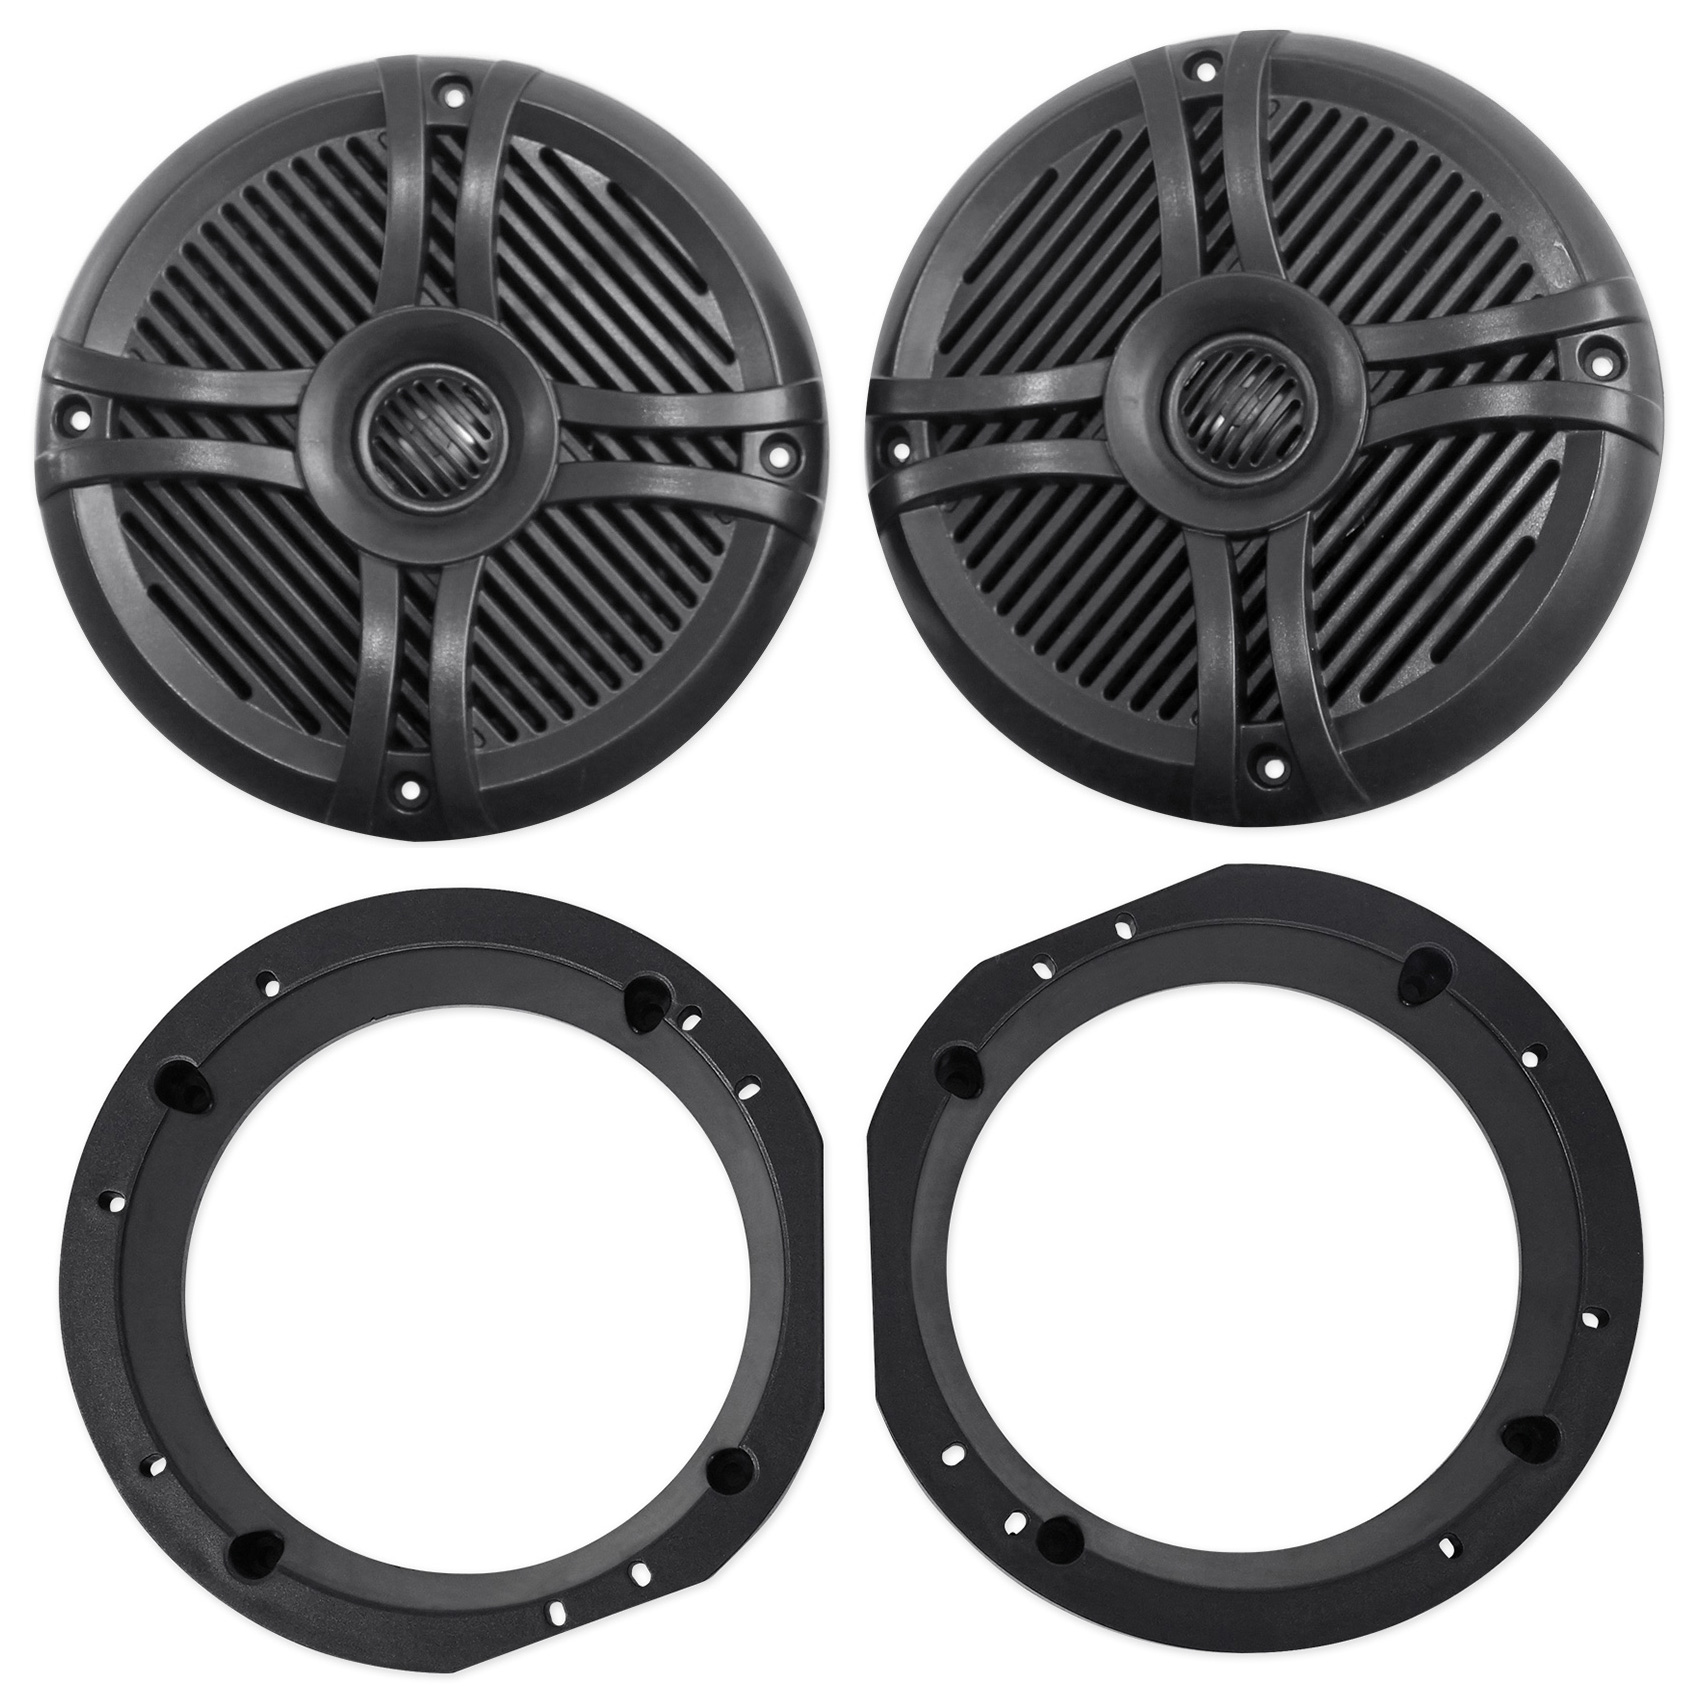 "1998-2013 Harley Davidson Touring 6.5"" 800w Rockville Speakers w/Adapter Plates"